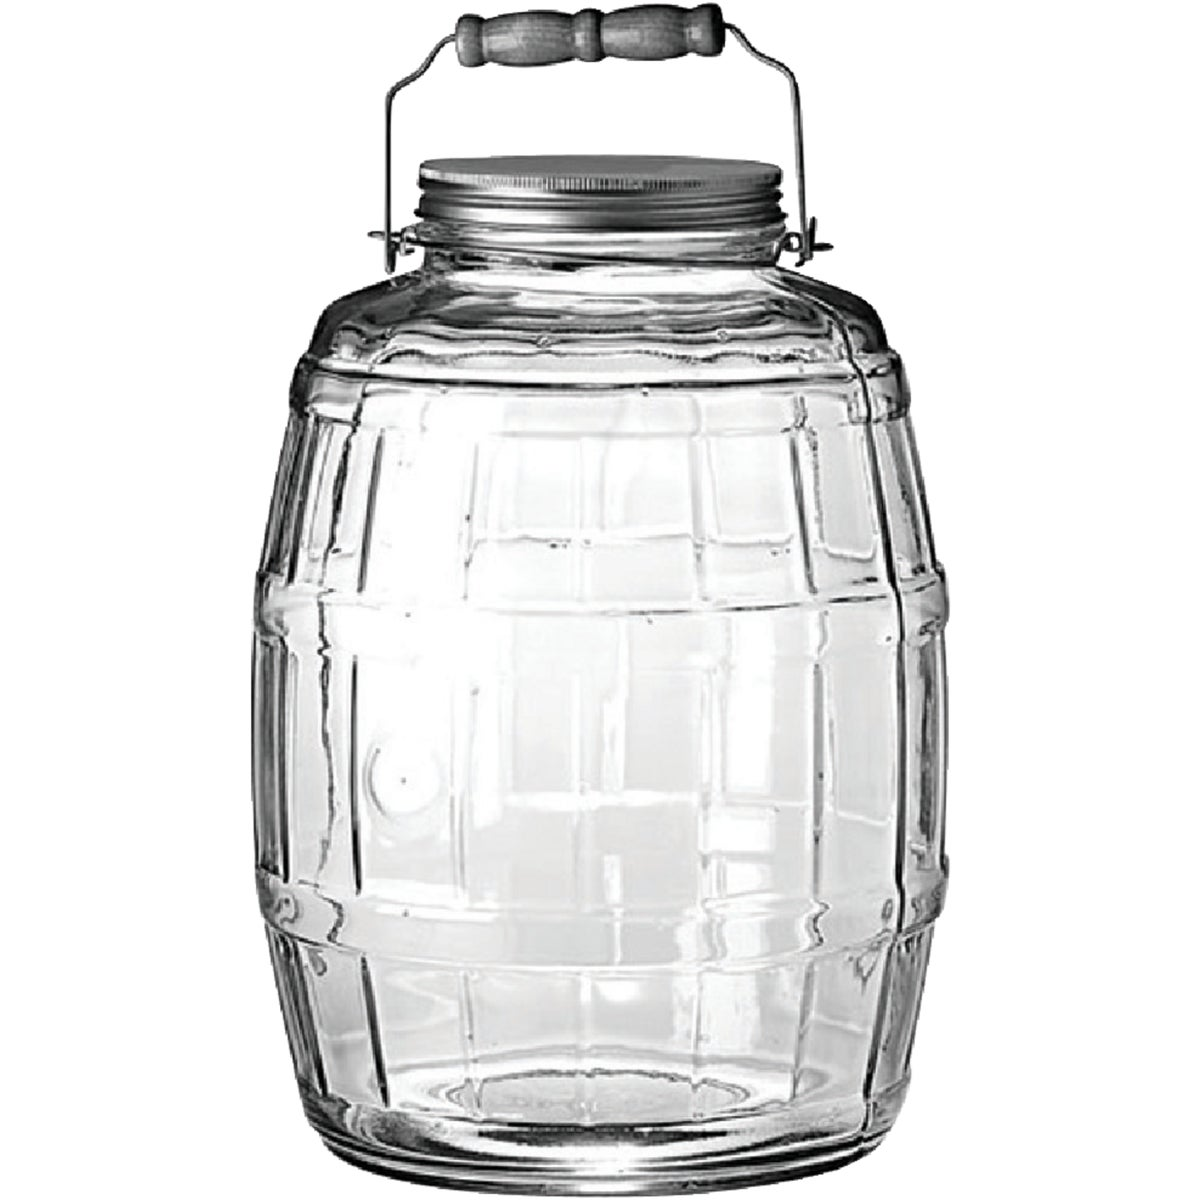 2.5GAL BARREL JAR - 85679 by Anchor Hckg Roberts